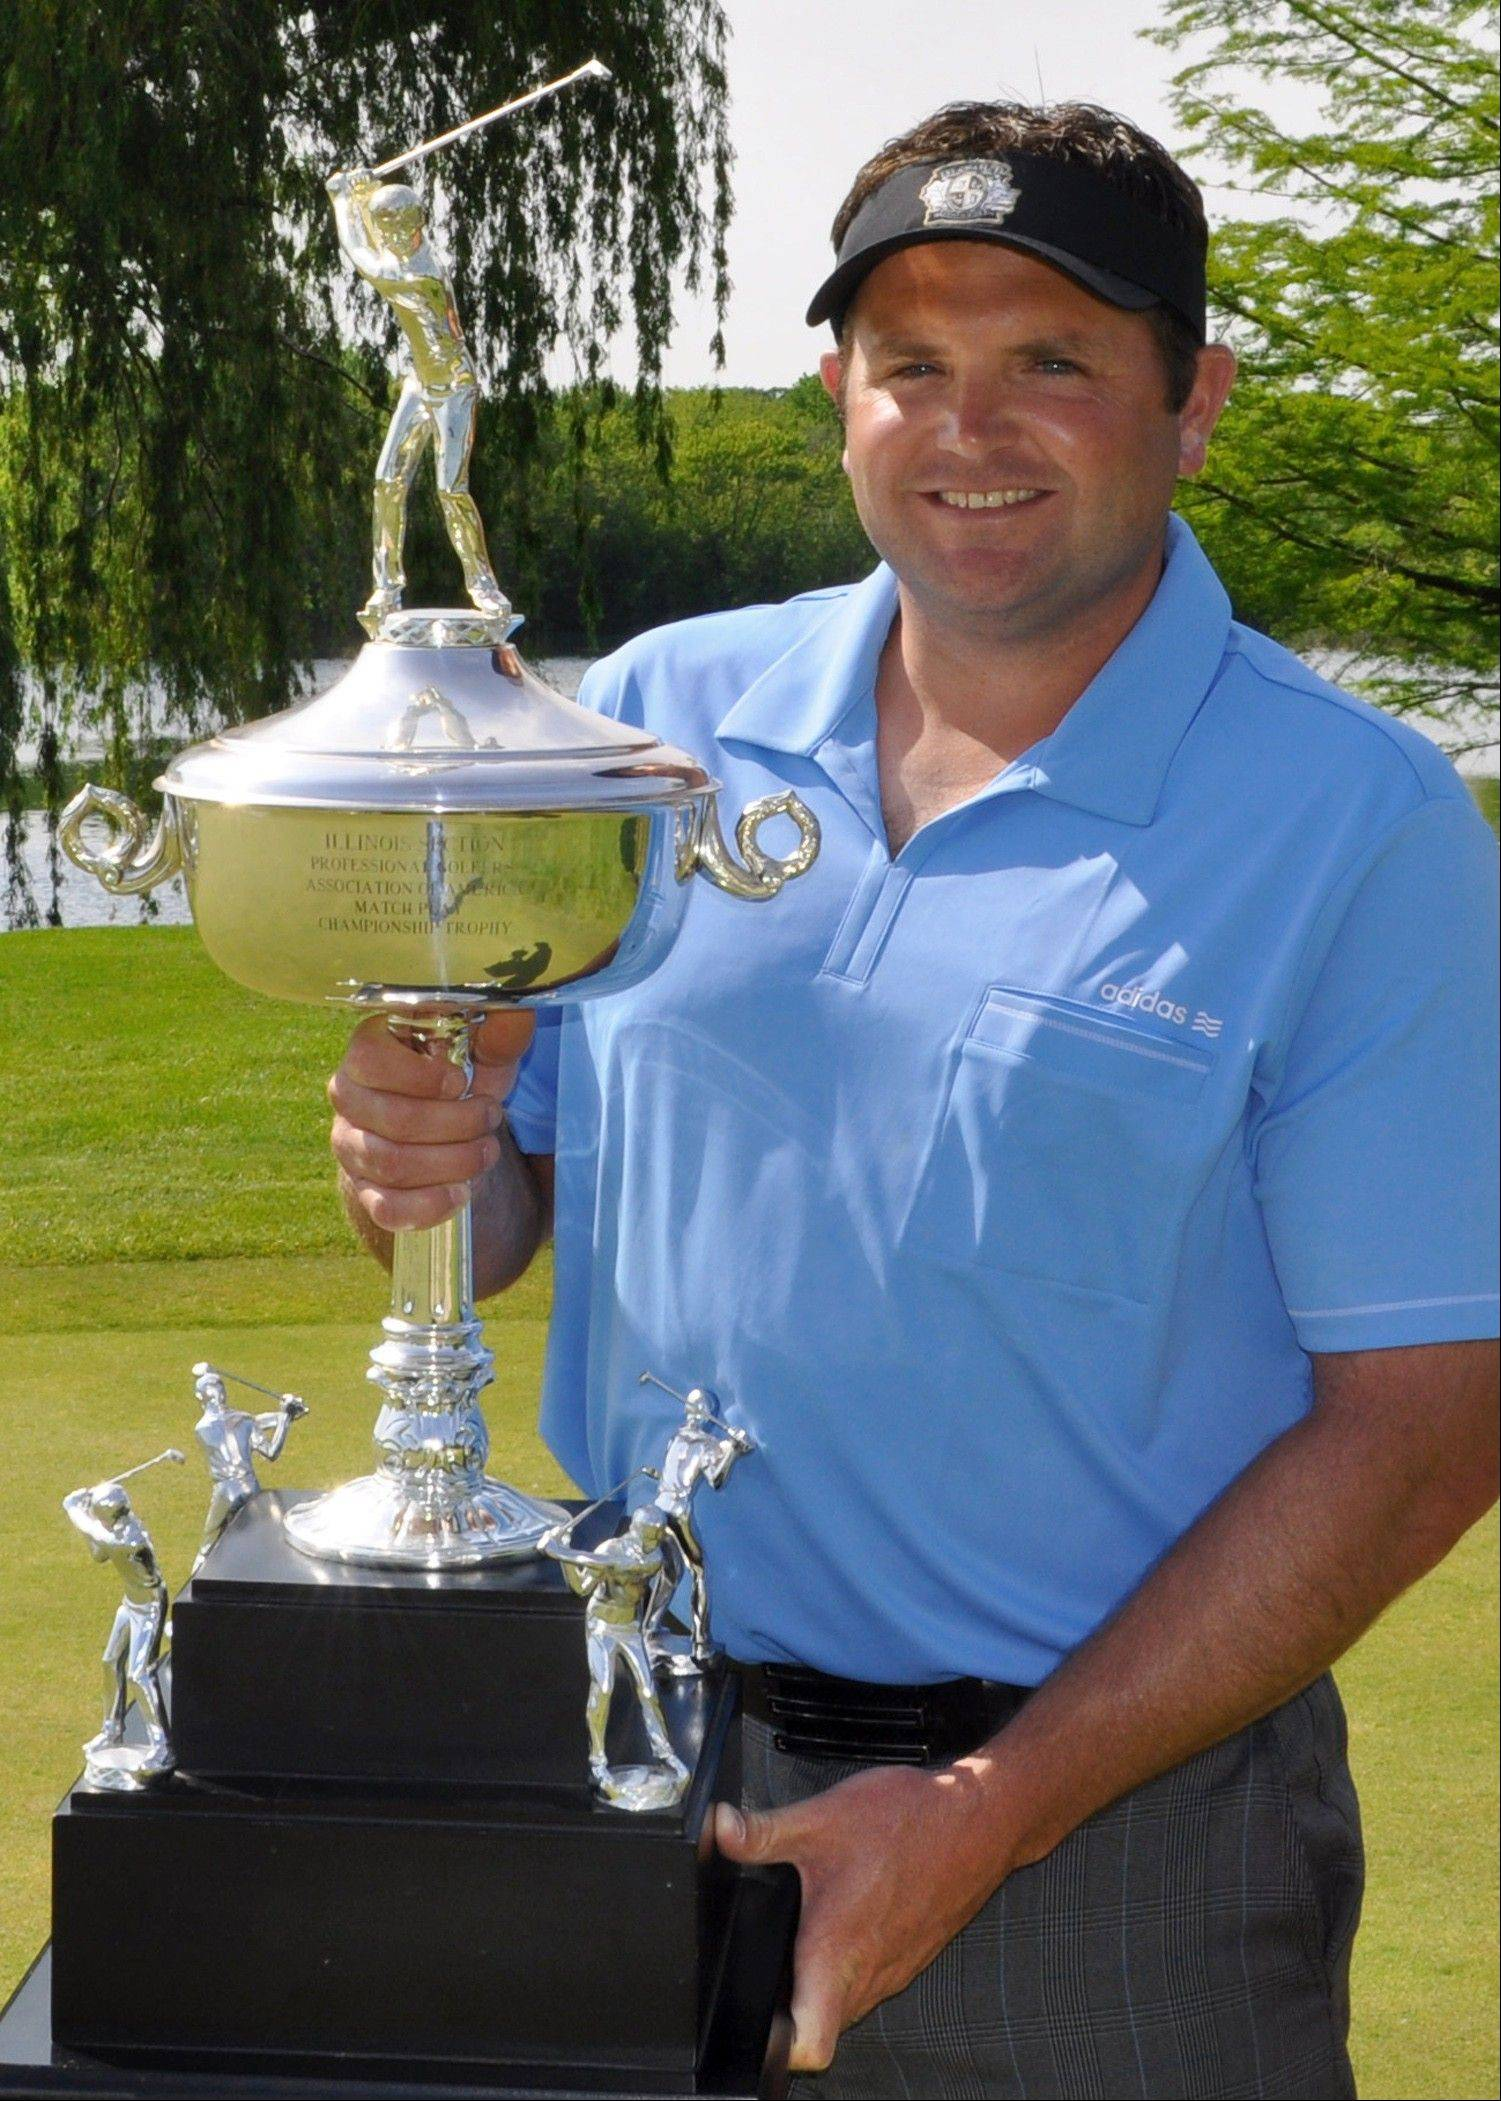 Curtis Malm, the IPGA Player of the Year, is the new head professional at White Eagle in Naperville.